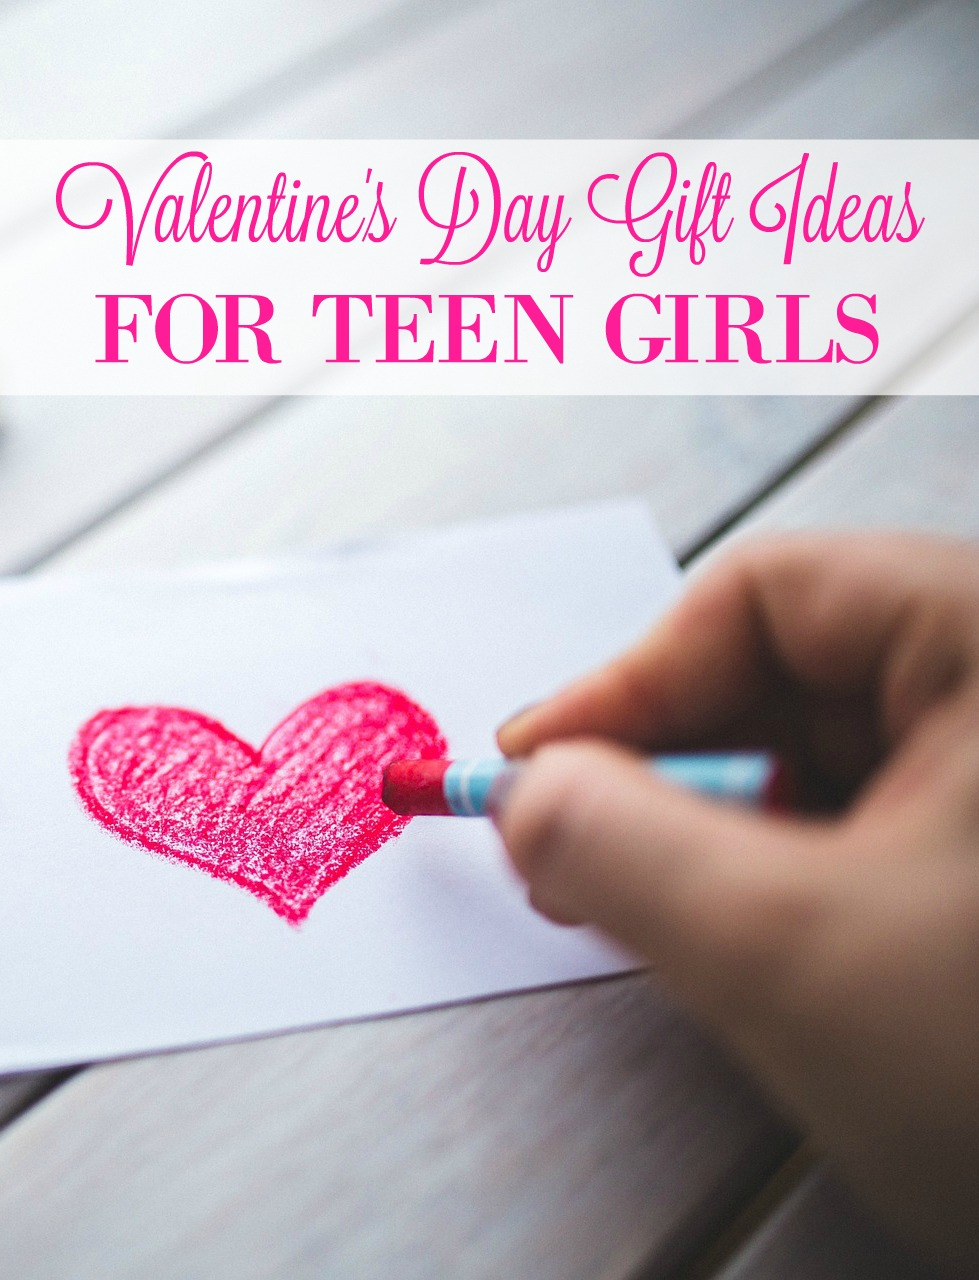 valentines day gift ideas for girls beyond chocolate and flowers blonde mom blog